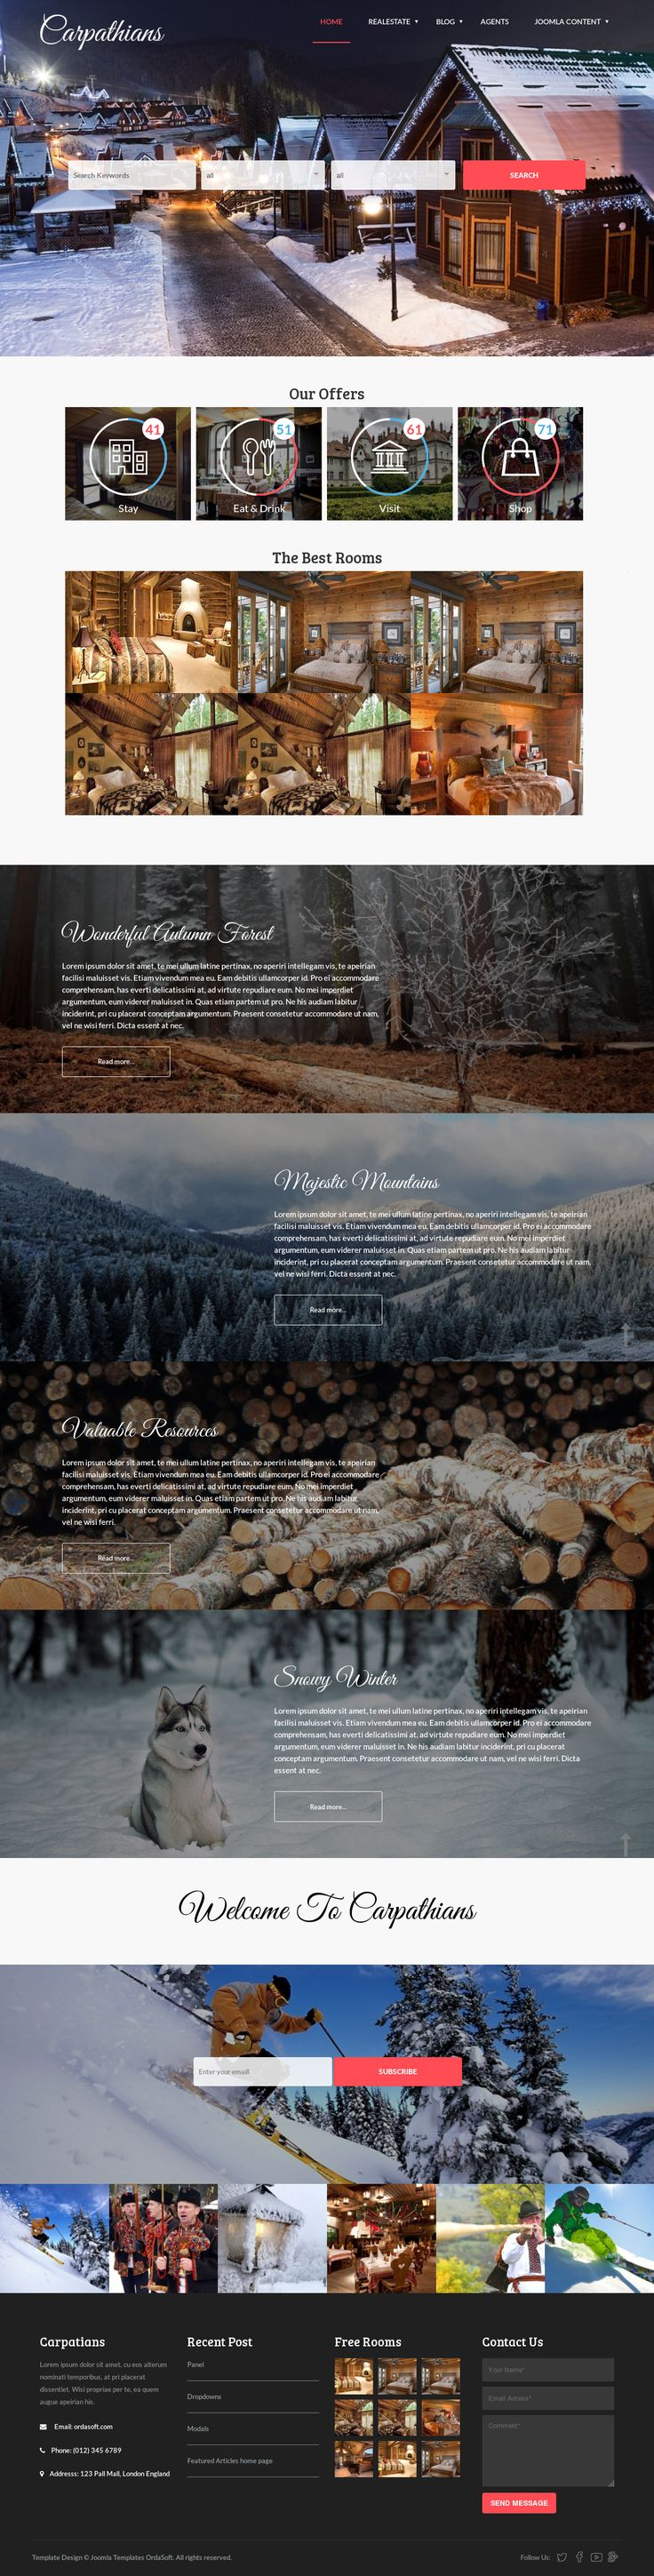 Carpathians is an extremely flexible, powerful and responsive real estate website template with integrated Joomla solution for managing properties and real estates. This Joomla real estate template will be suitable both for a single hotel, resort, ski in/ski out condos, private homes, townhouses, lodging, accommodations and for real estate website portals where agents and brokers can submit the properties.